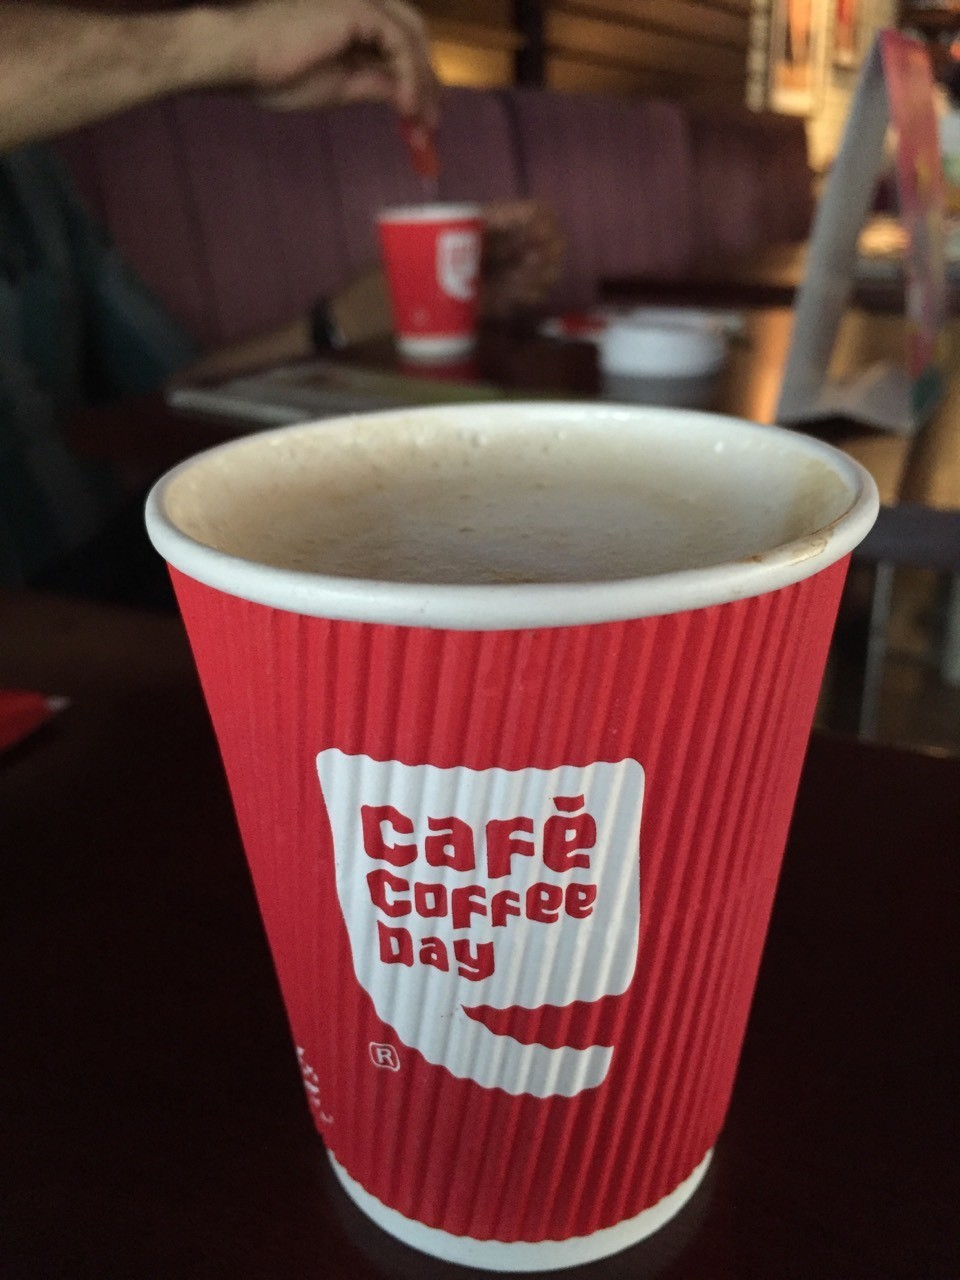 Country doesn't matter coffee does #iphoneography #india #coffee